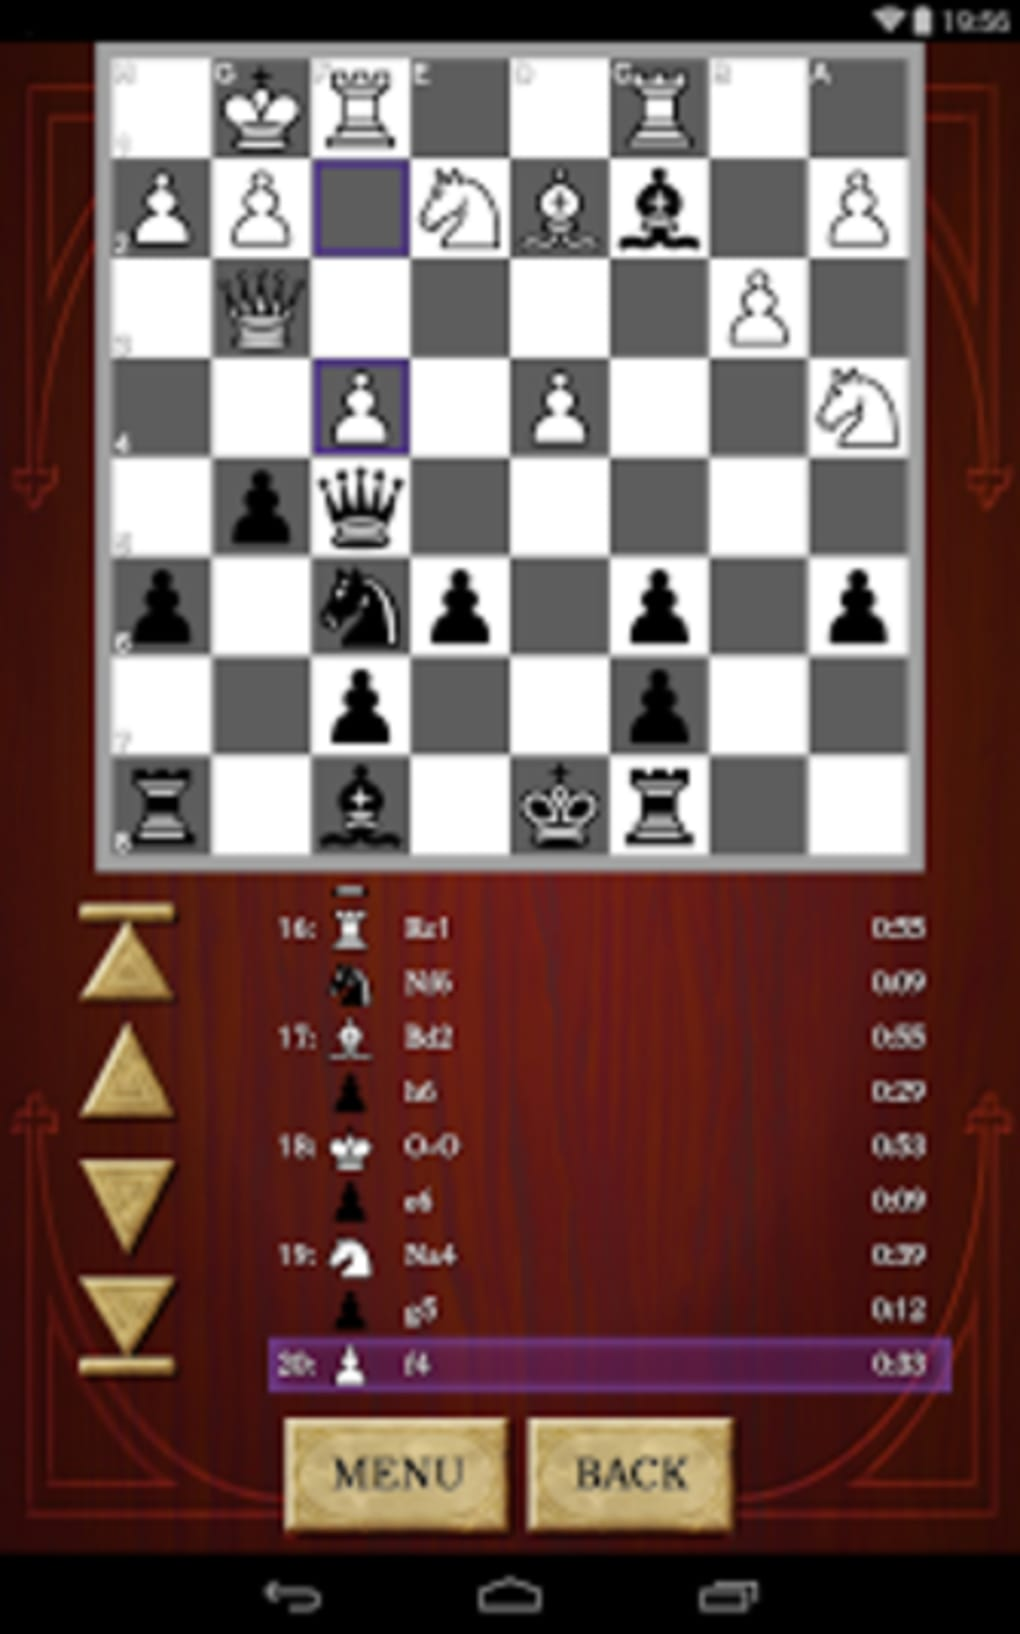 7 Best Chess Apps For Android And iPhone/iPad | TechUntold